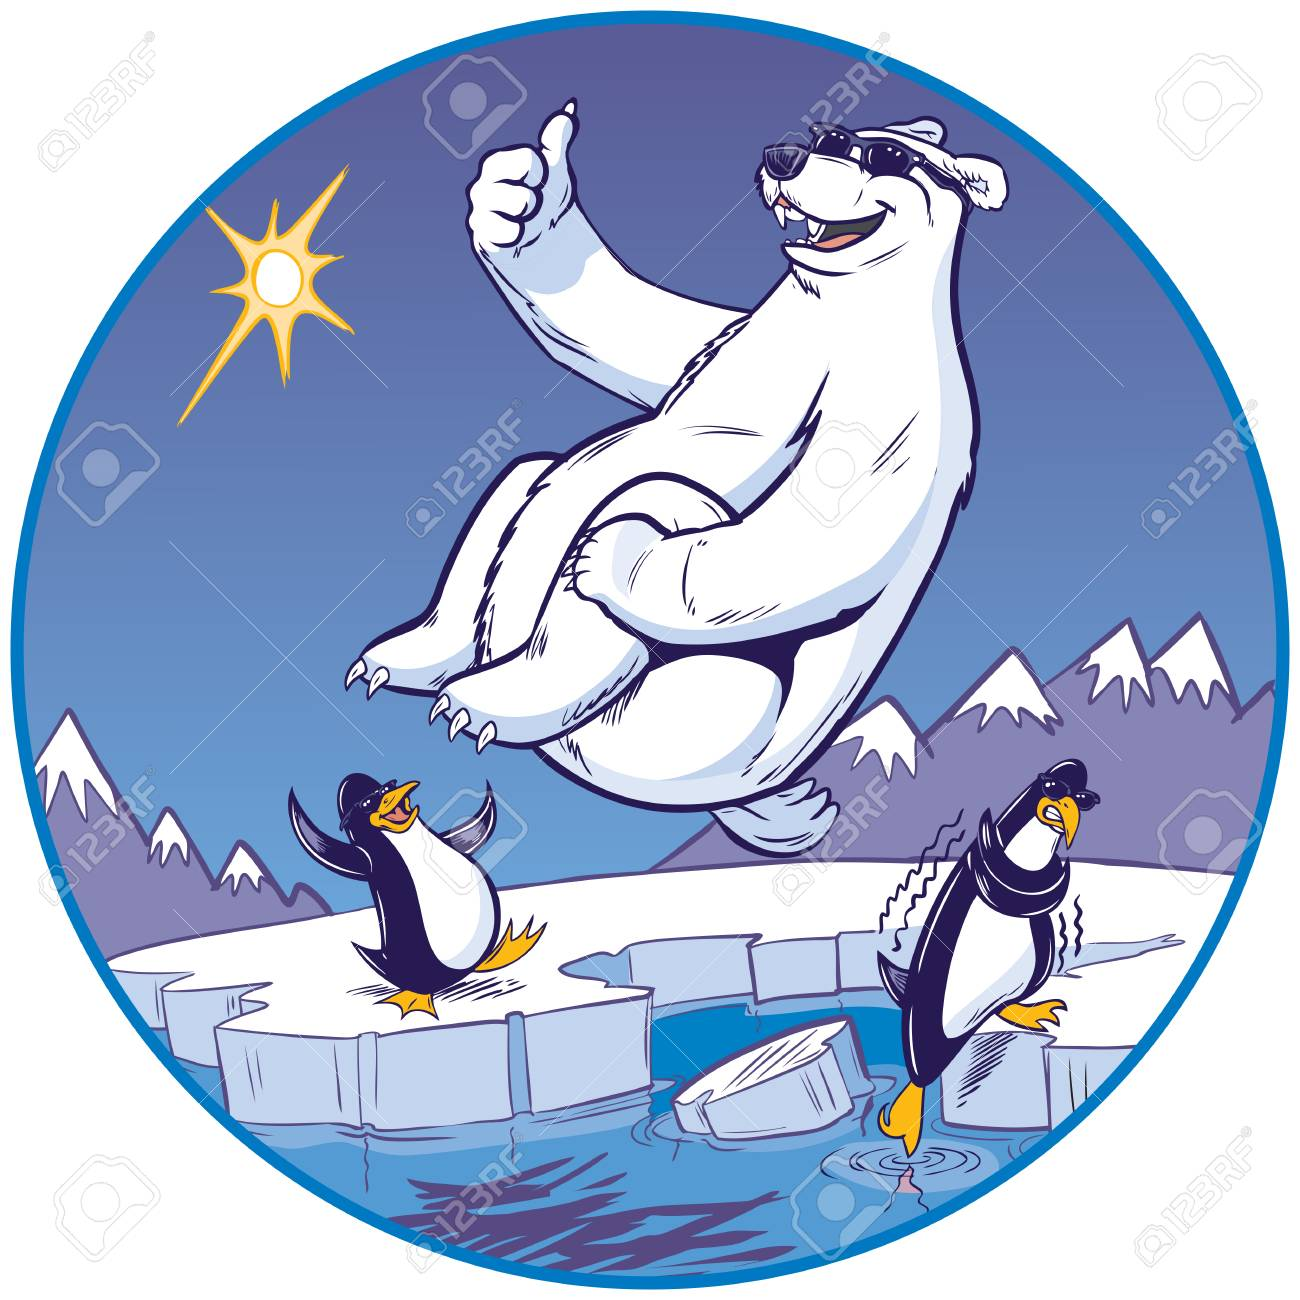 hight resolution of vector vector cartoon clip art illustration of a cute funny polar bear mascot giving a thumbs up while doing a cannonball plunge